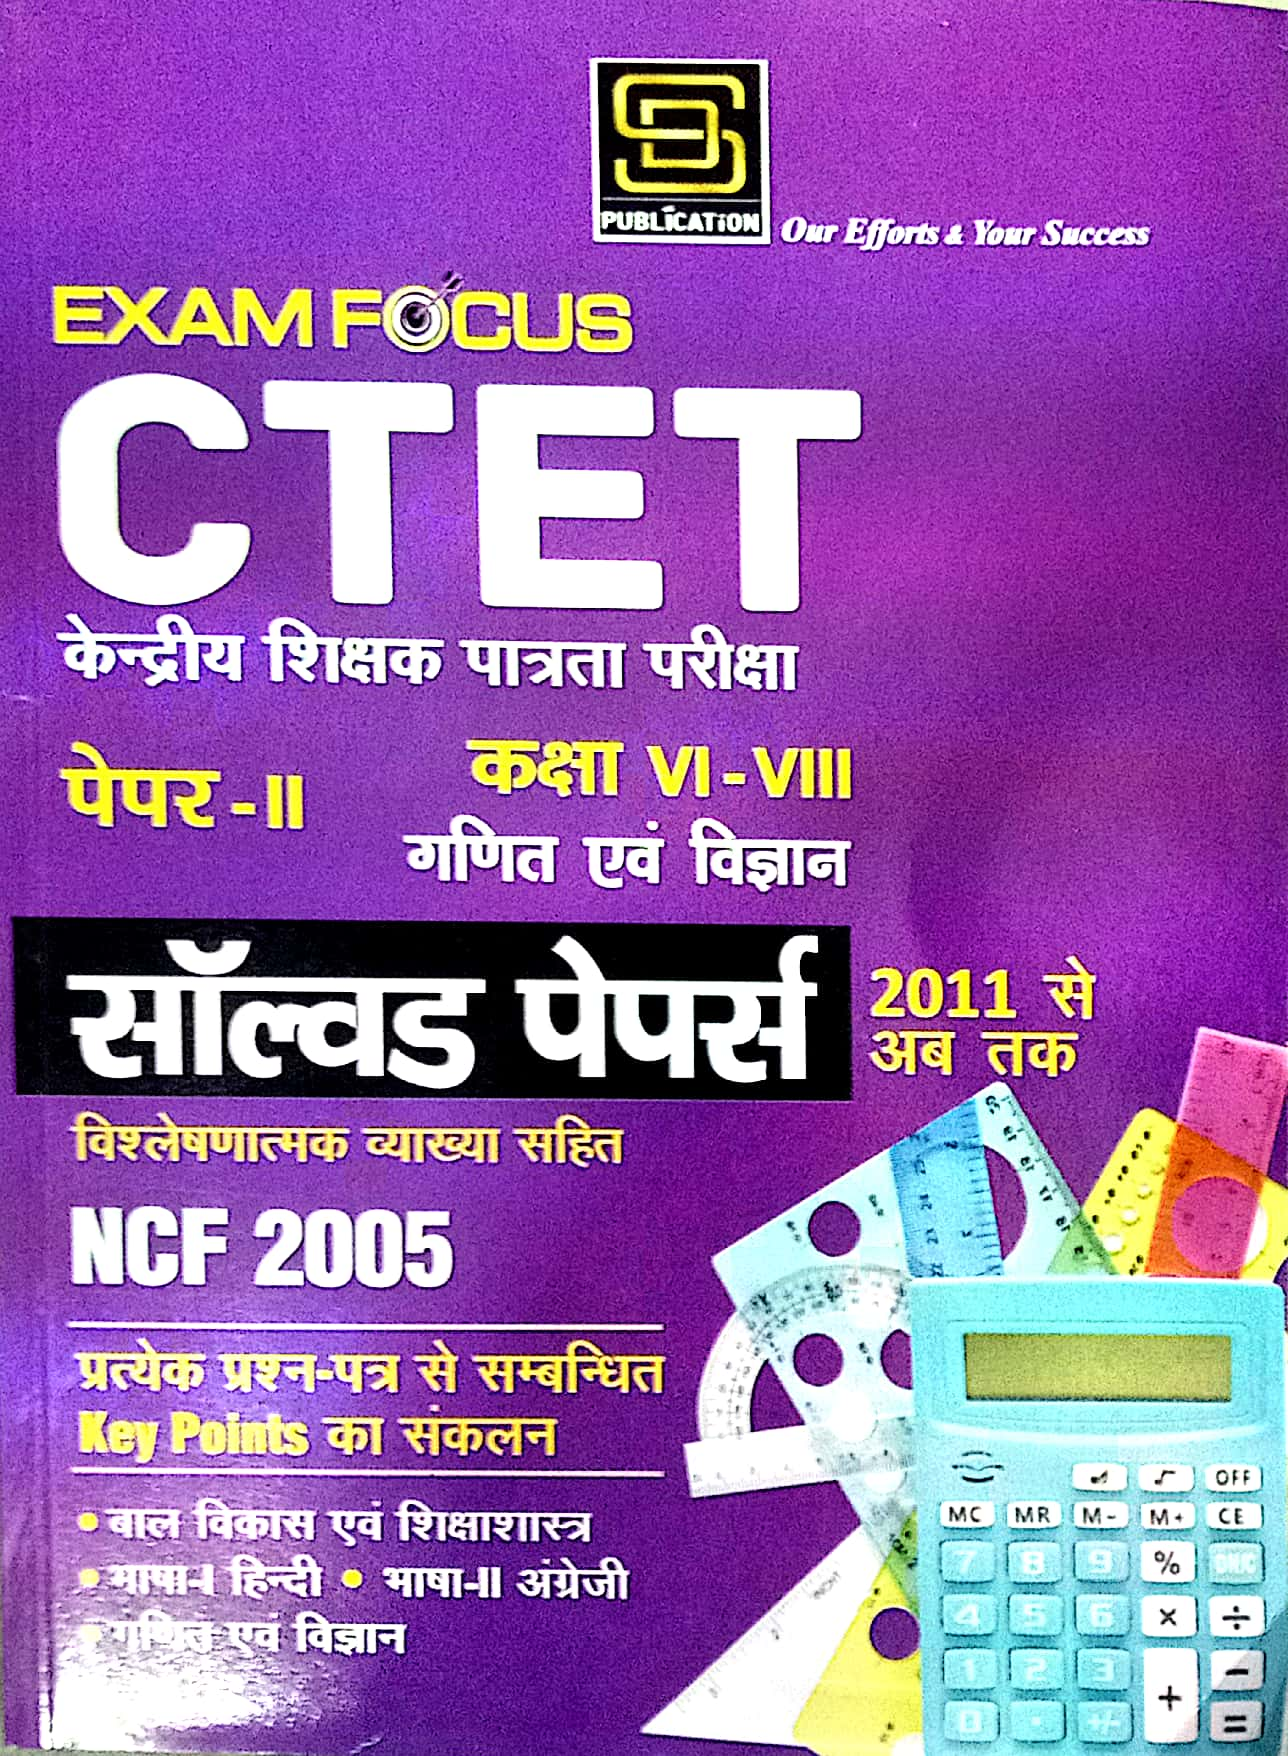 SD PUBLICATION CTET PAPER 2 SOLVED PAPER MATH SCIENCE NCF 2021